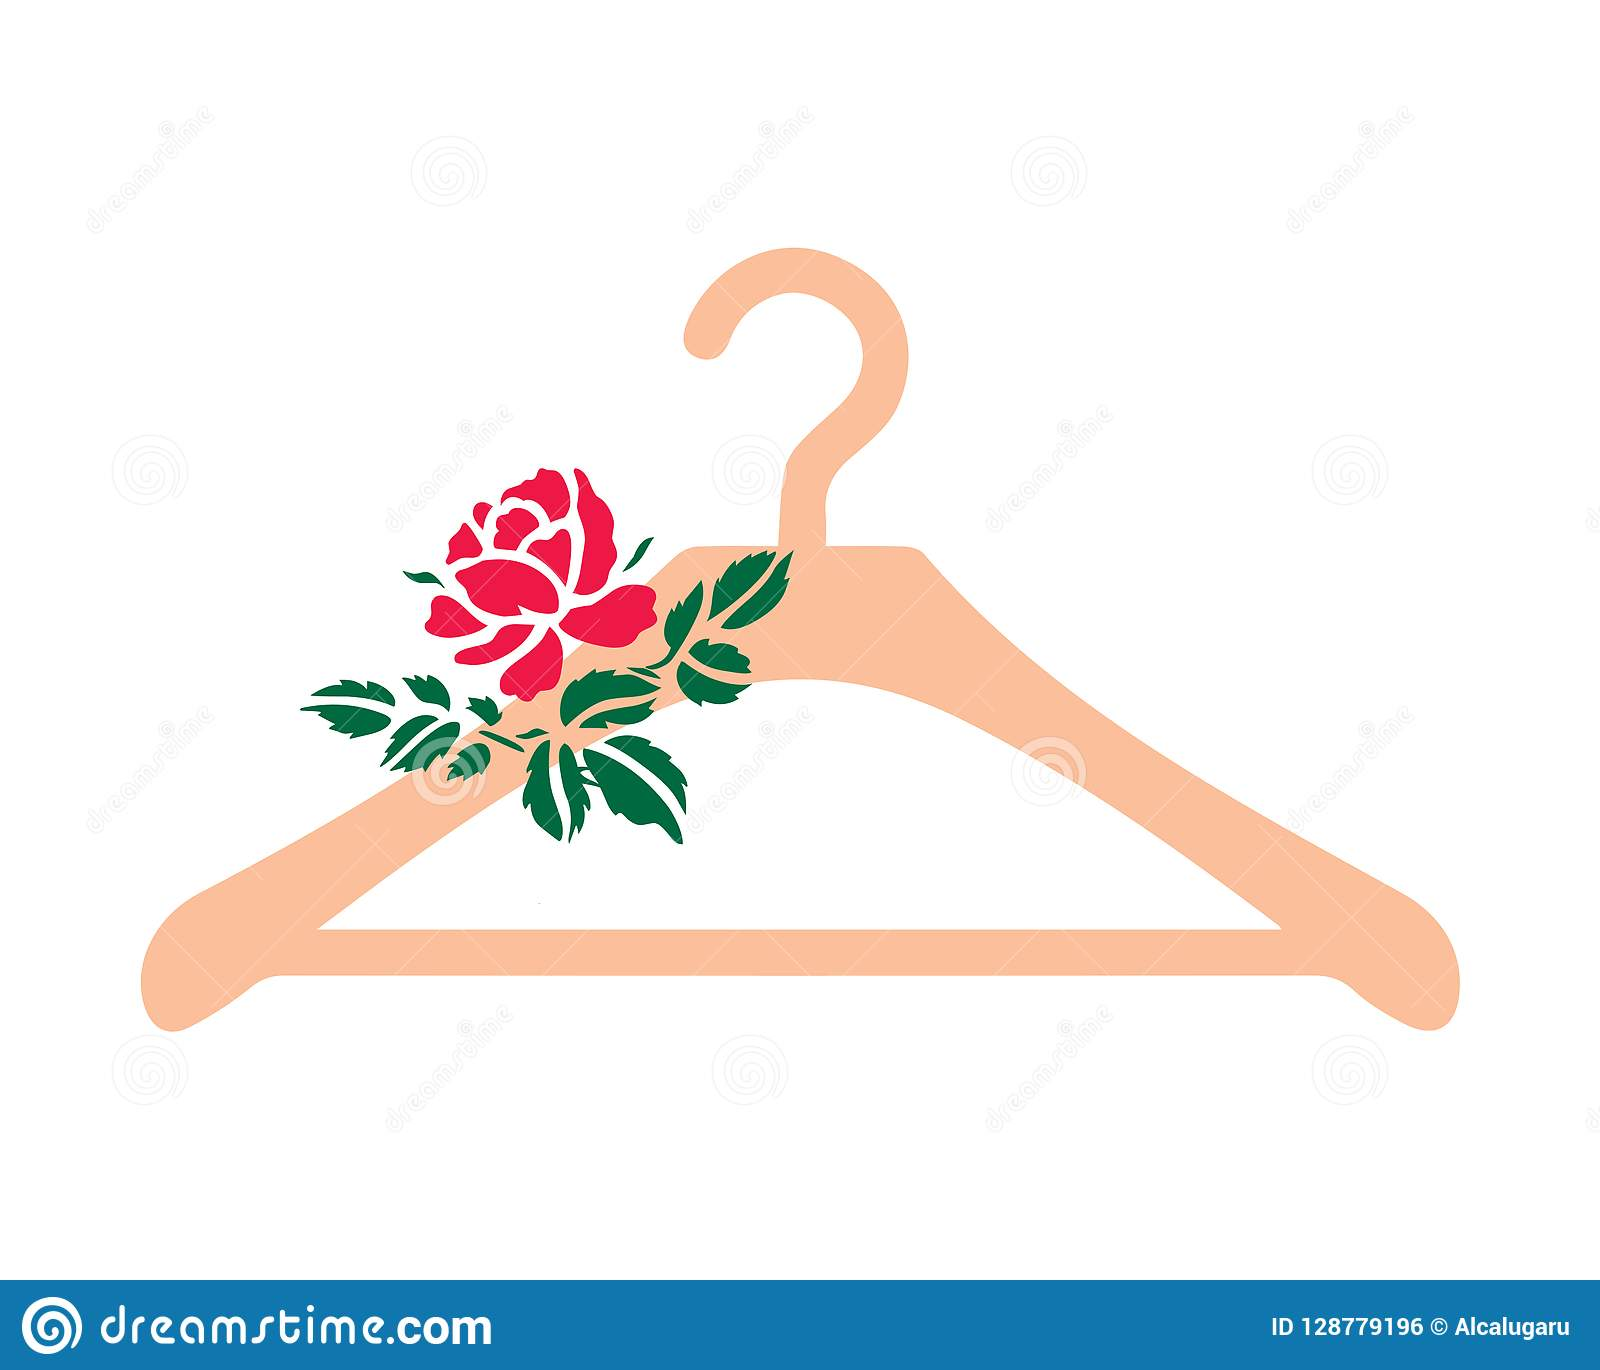 Hanger Icon With Flowers Stock Vector . Illustration Of